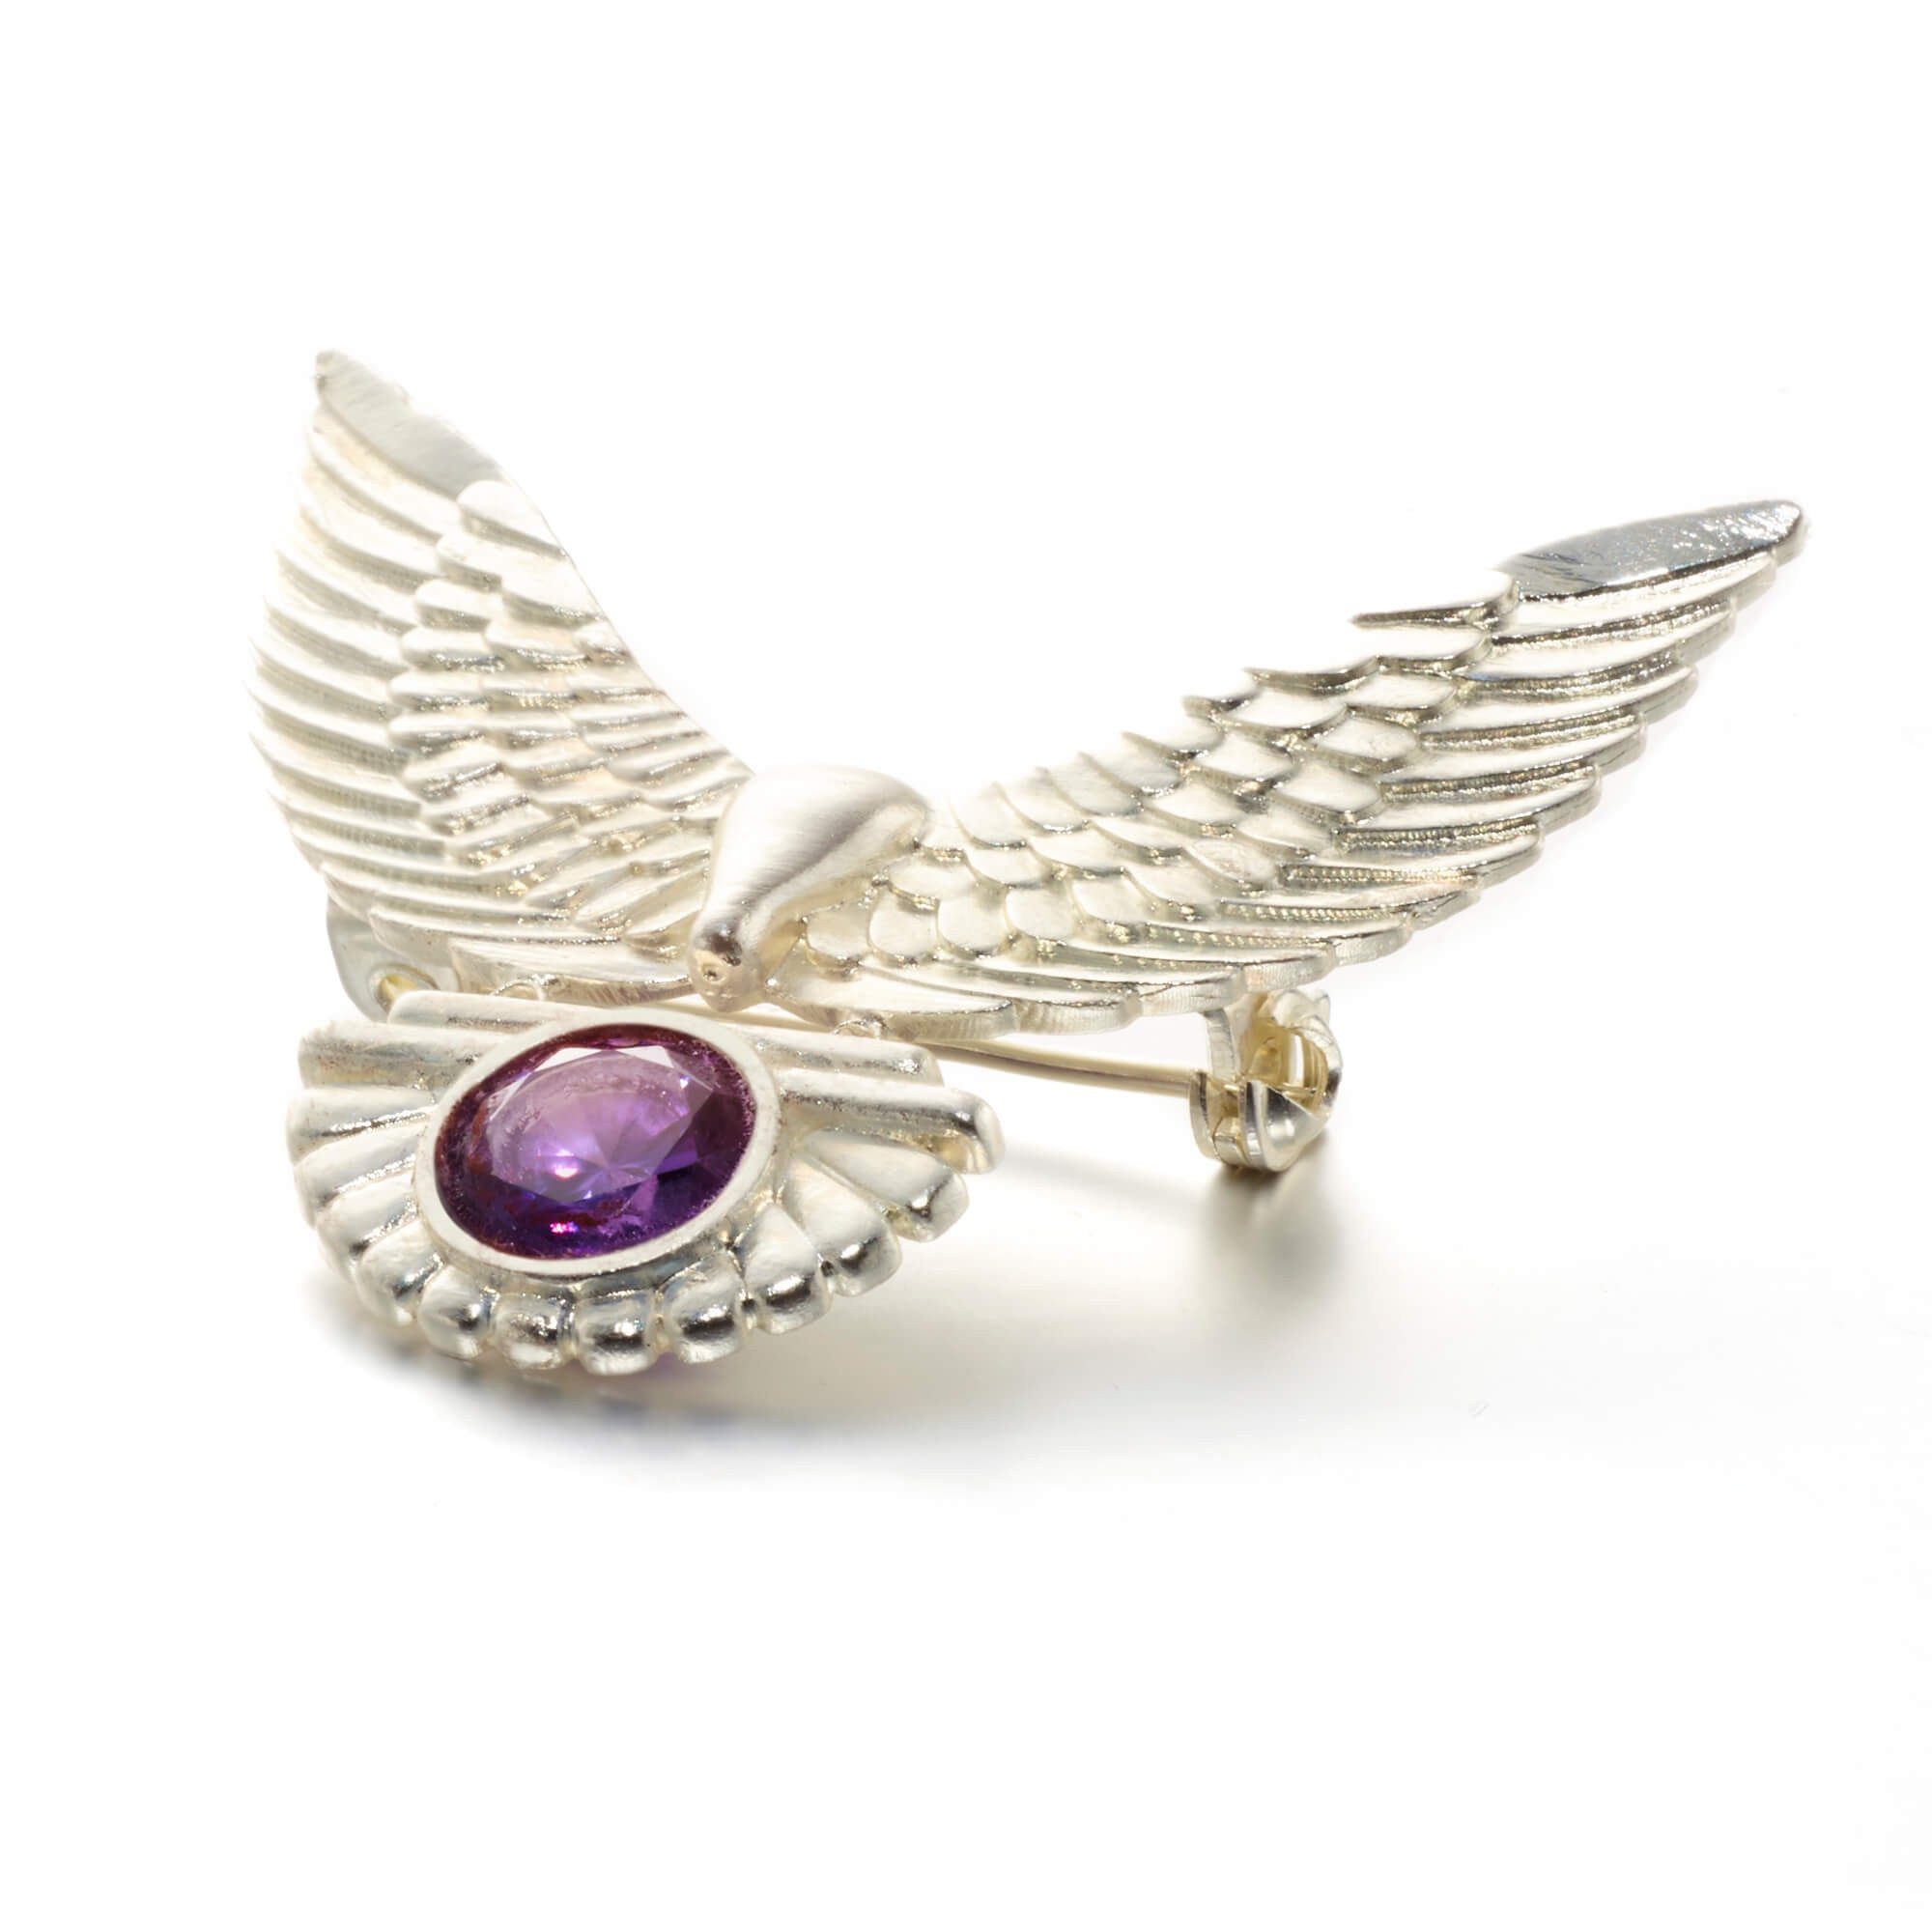 buccellati pin eagle high jewelry brooch brooches